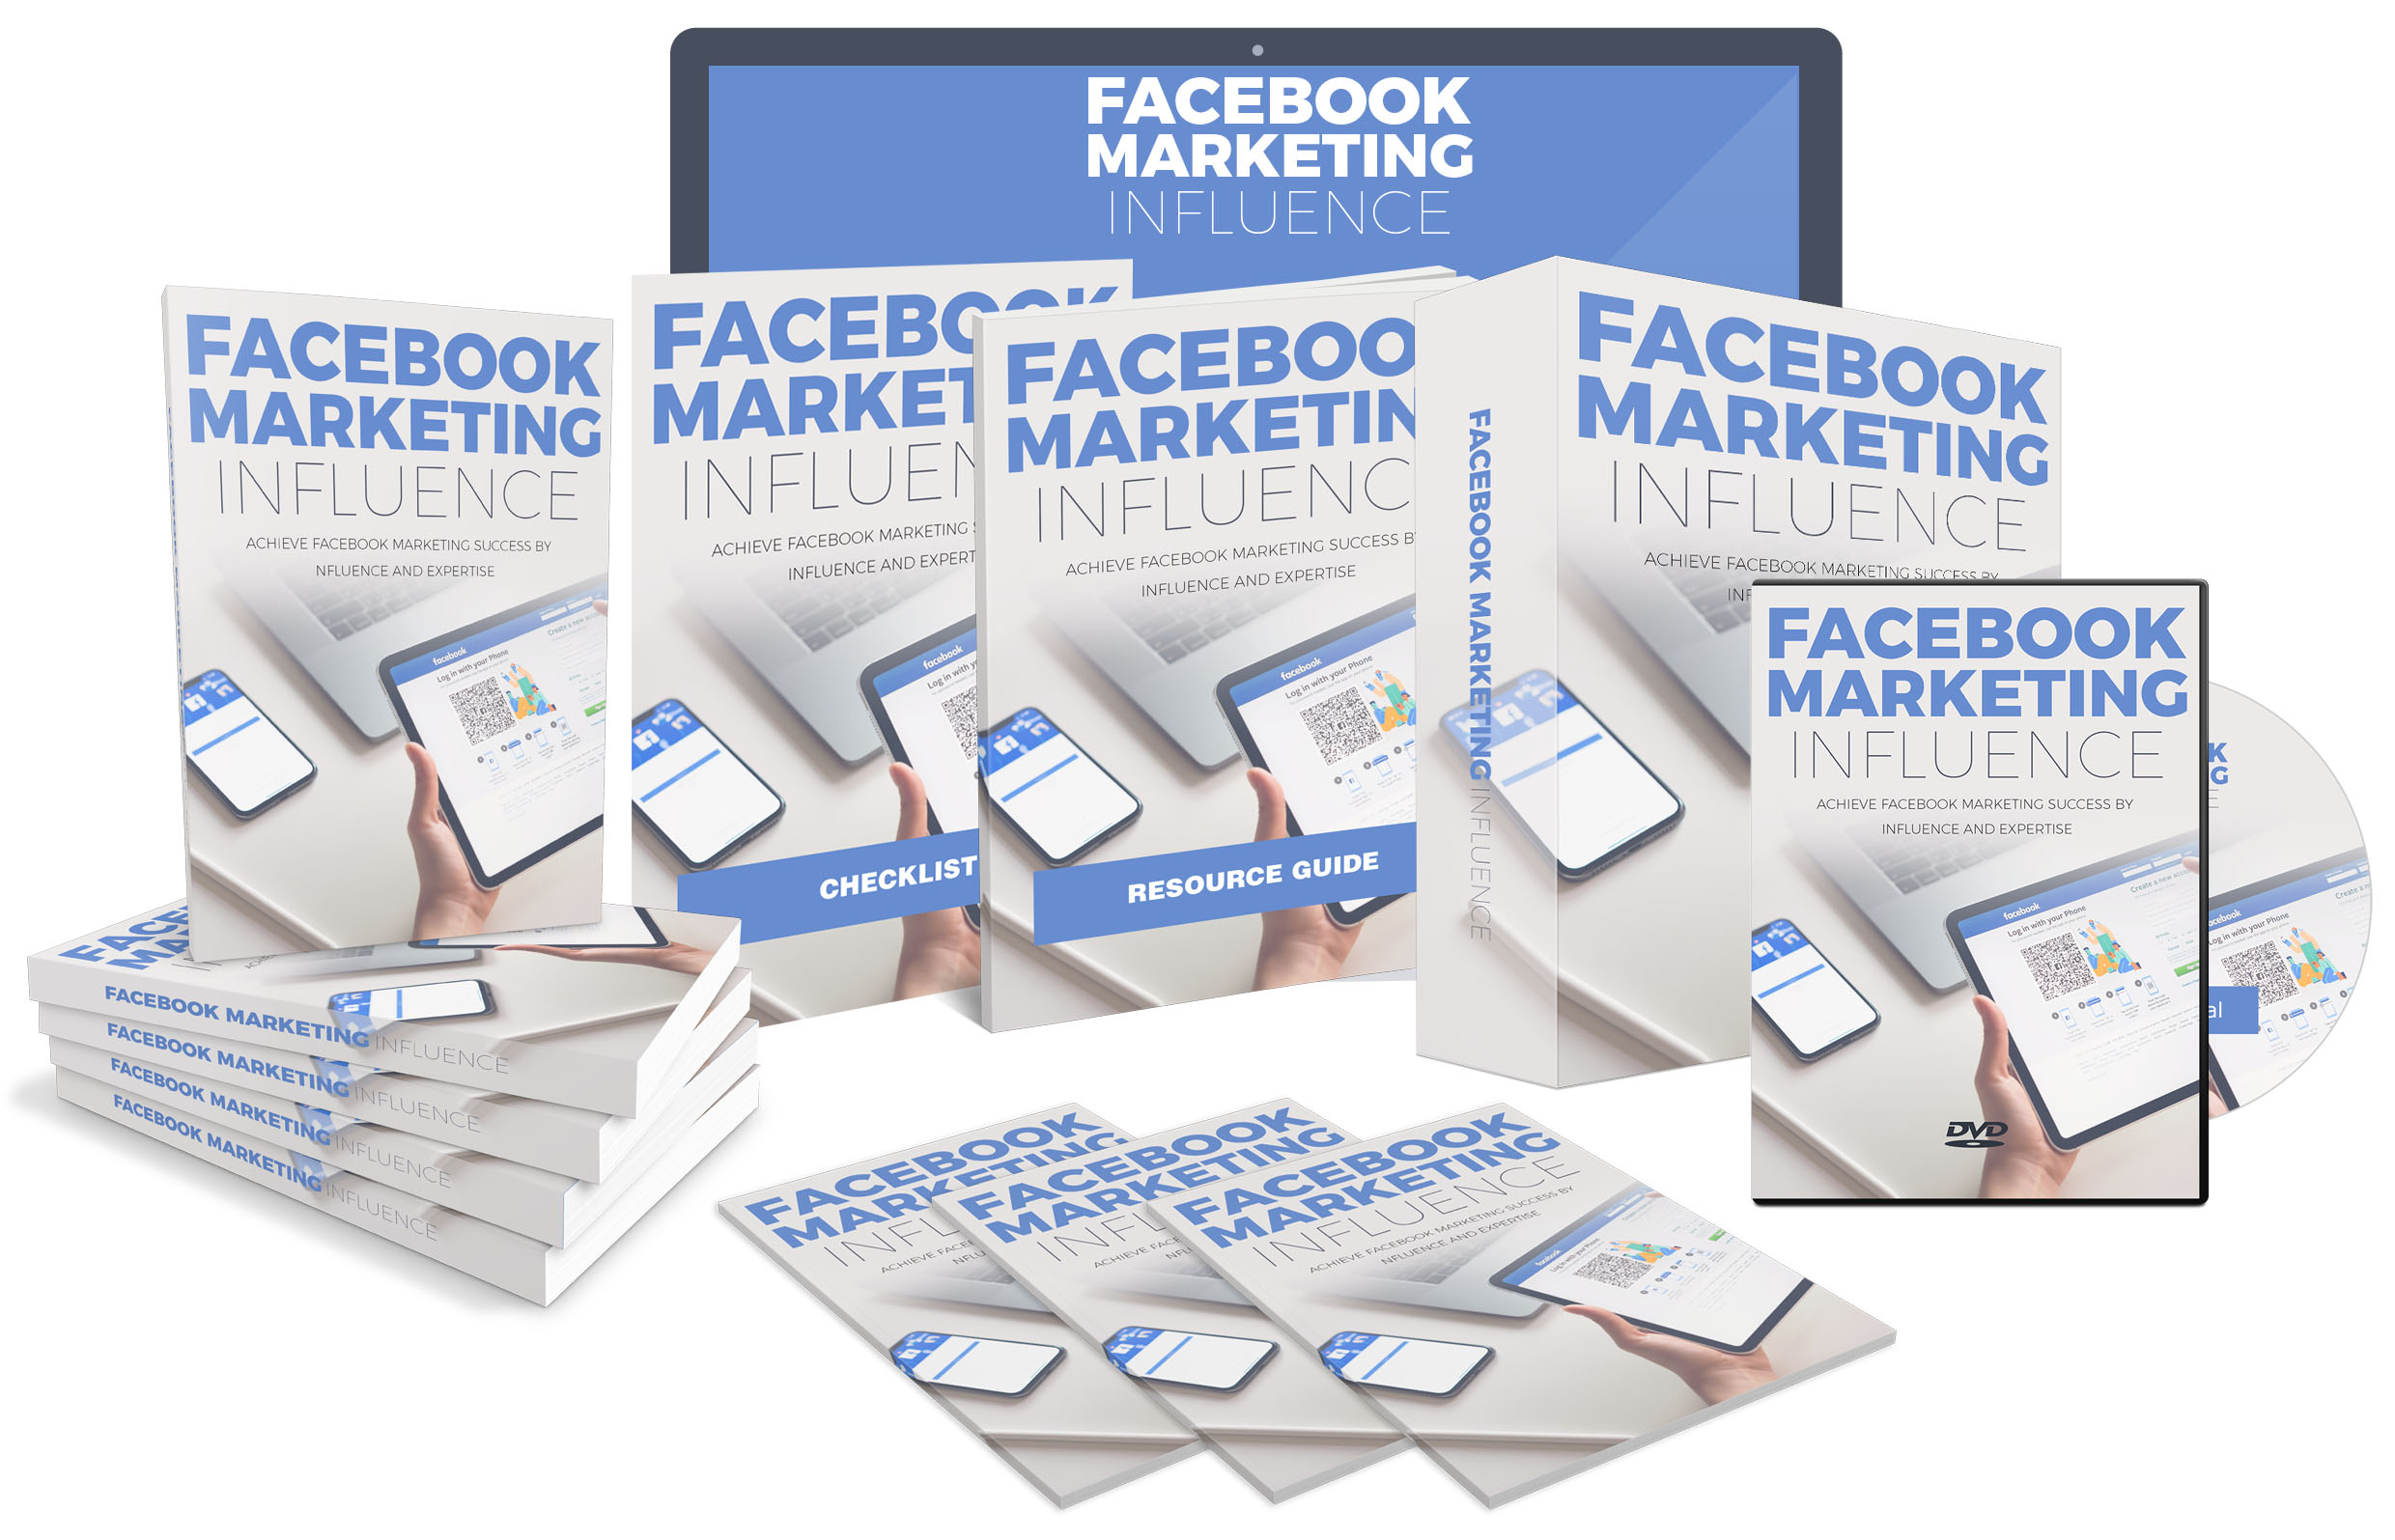 FaceBook Marketing Influence